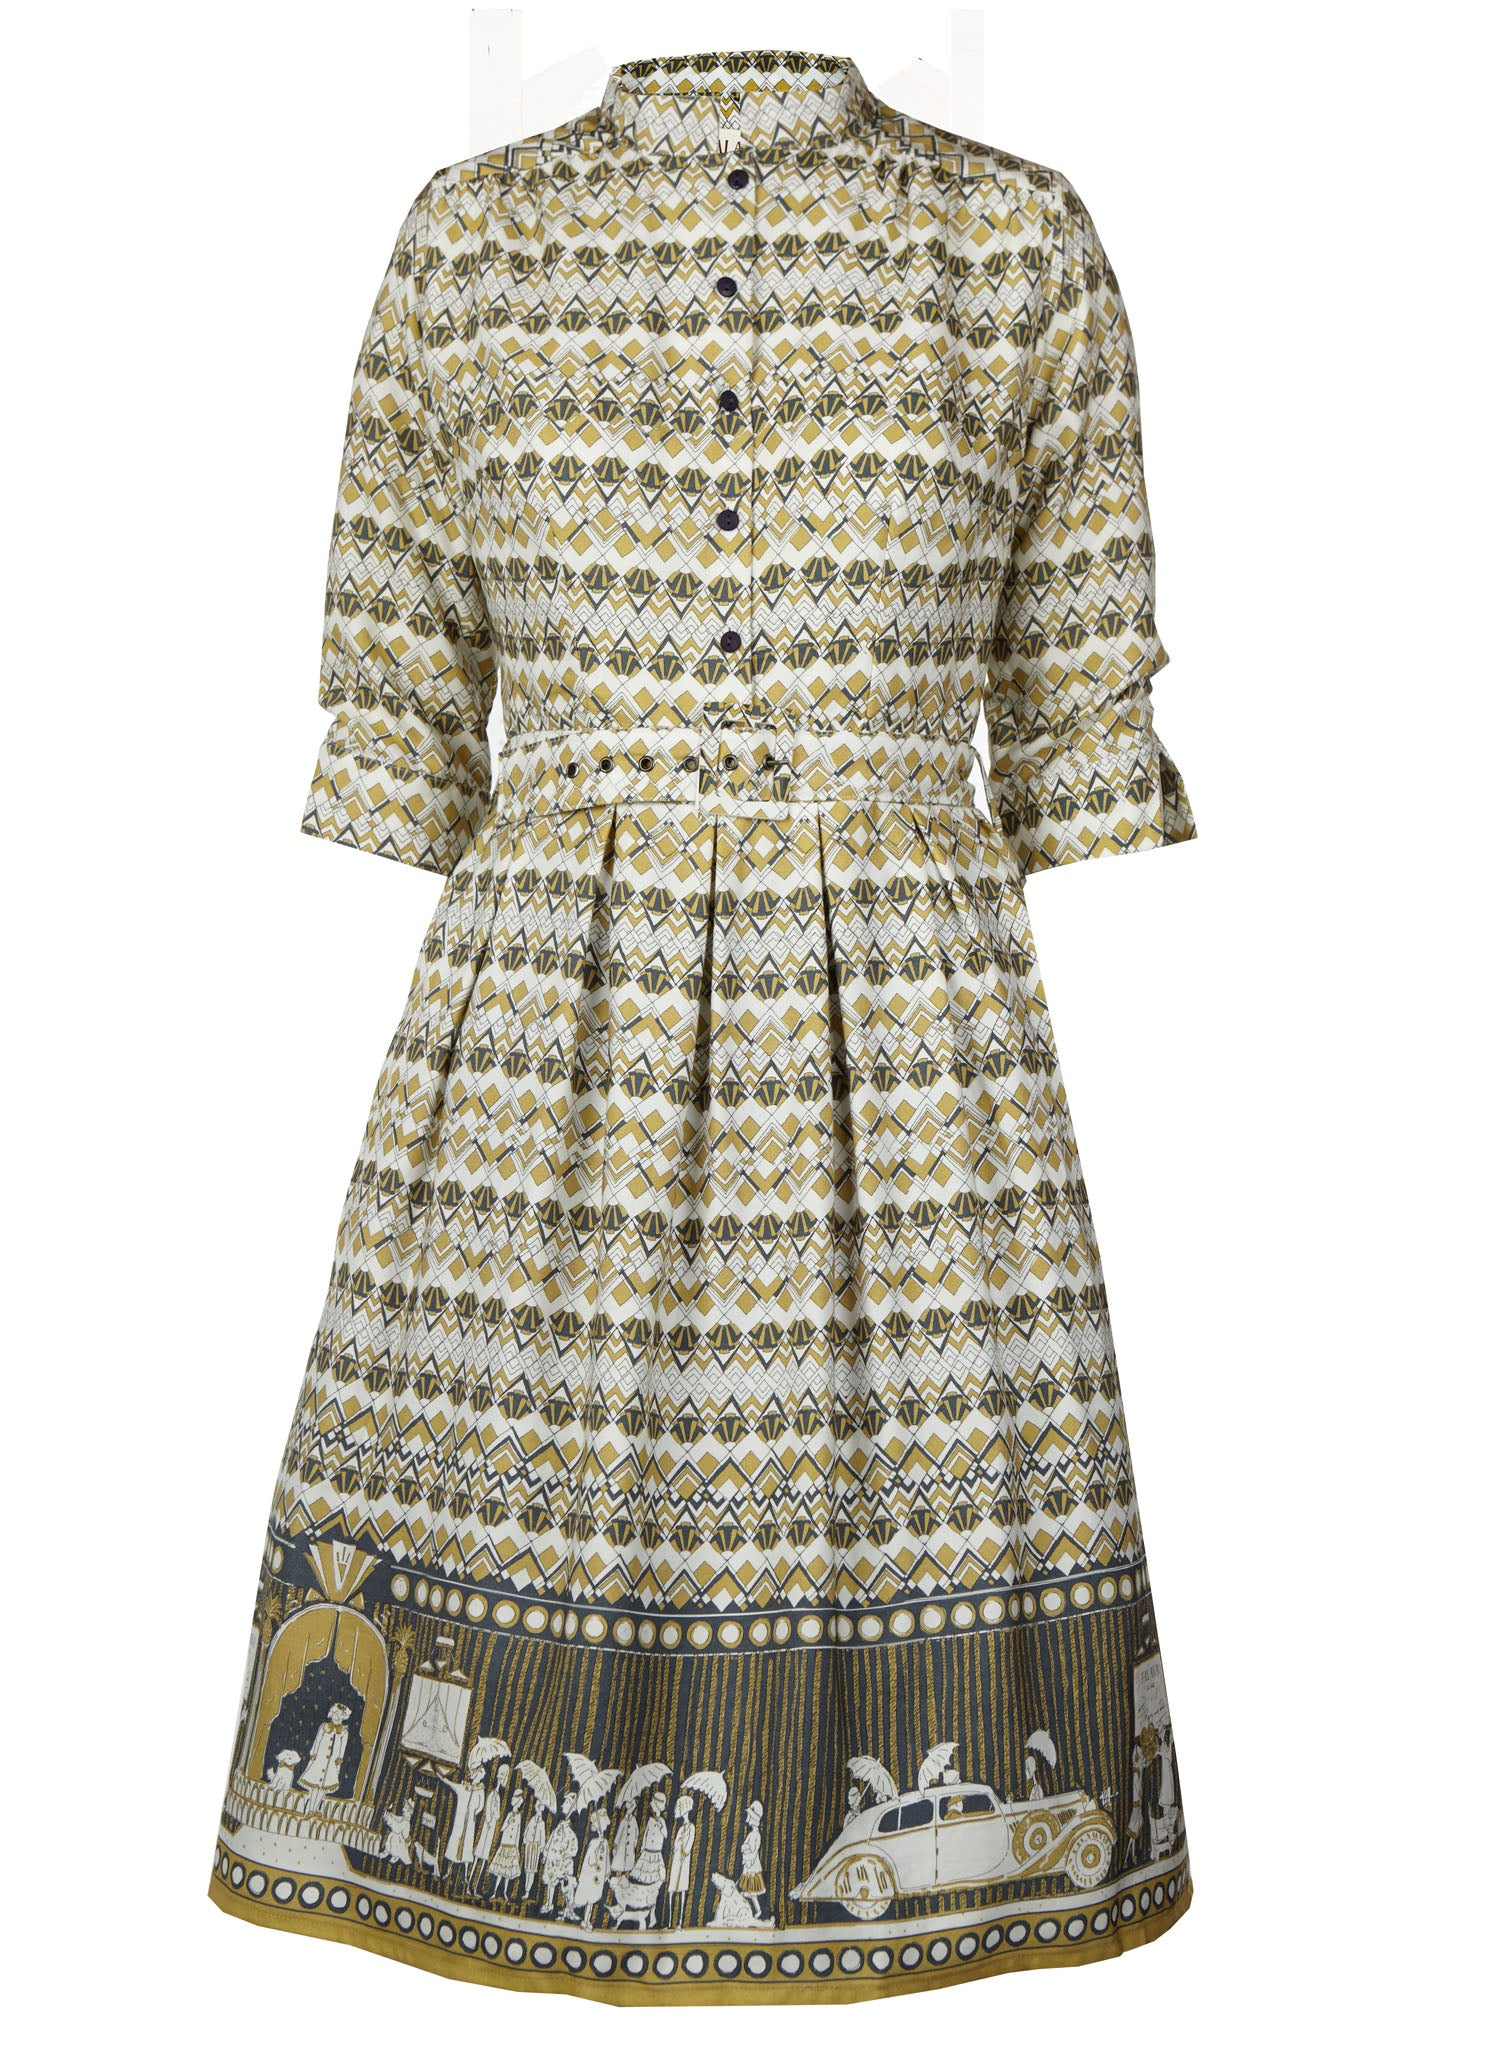 Cynthia - Ivory Moving Pictures Dress